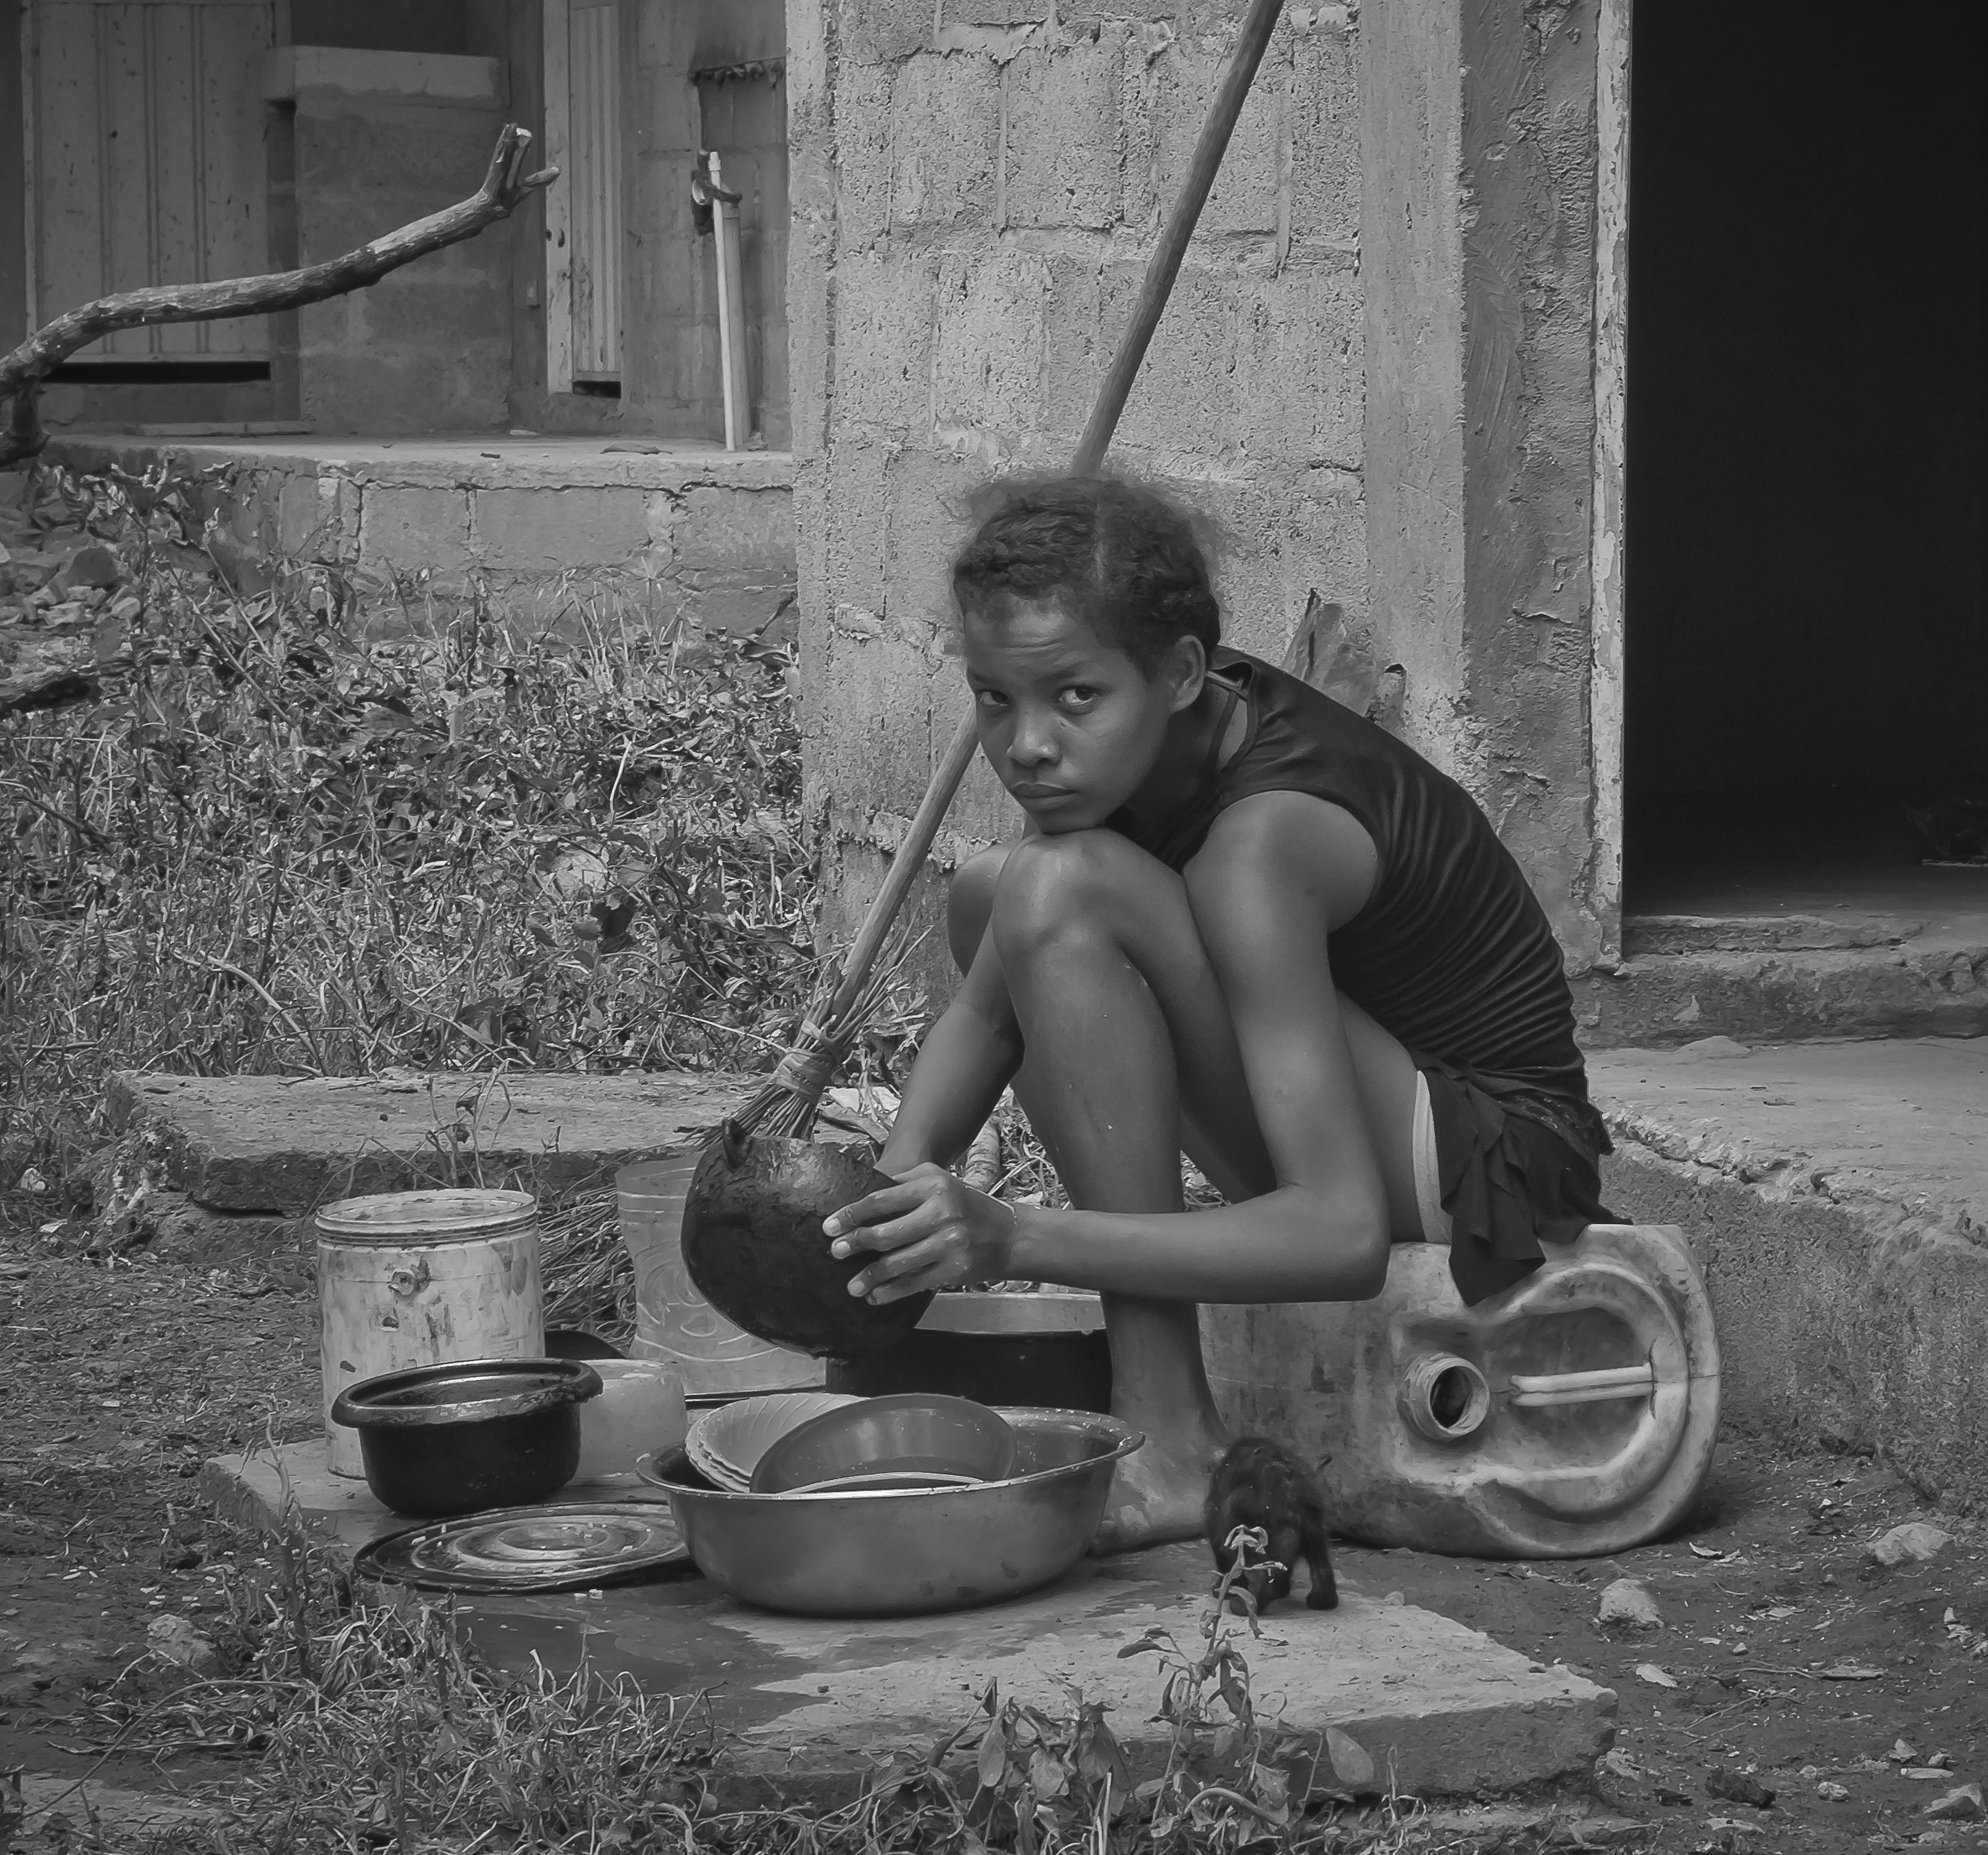 In this scene, I was impressed by how the transition to a reinvigorated peaceful environment influences the town life. This young girl adapted her kitchen outside of her house. She improvised a dish-washer with rustic tools, It seems she is washing her sadness while she is forgotten the violence.